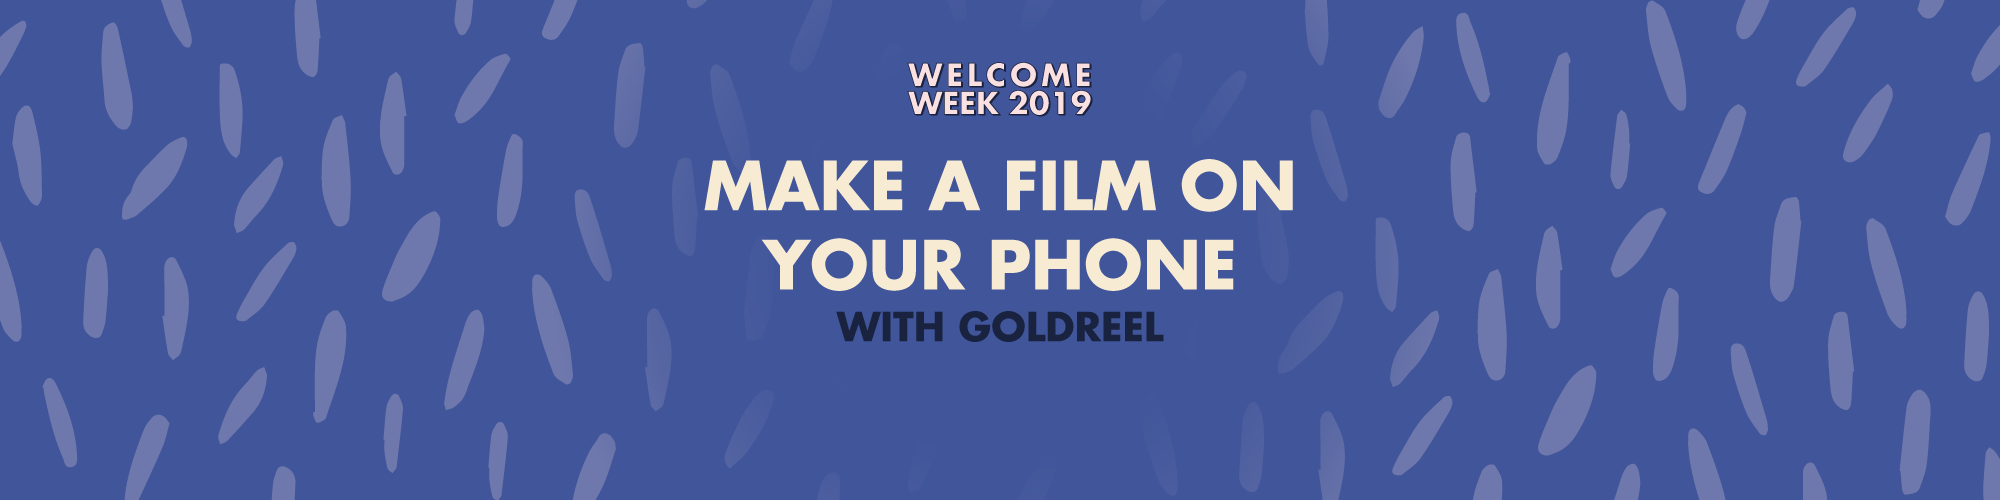 Make a Film on Your Phone with GoldReel